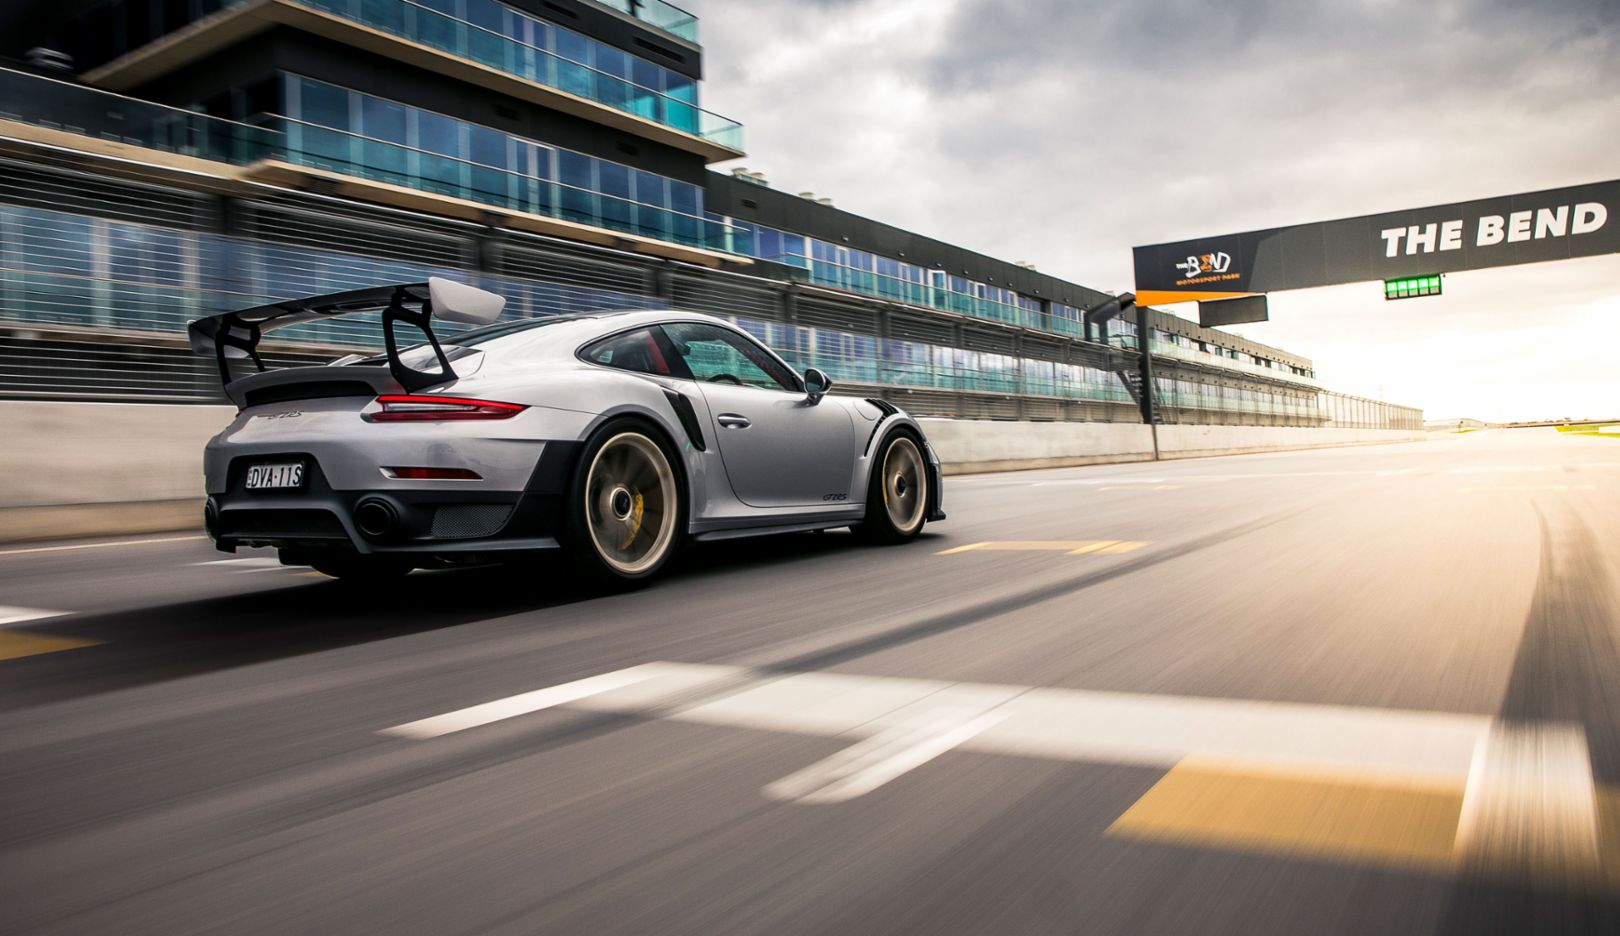 911 GT2 RS, The Bend Motorsport Park Australia, 2018, Porsche AG